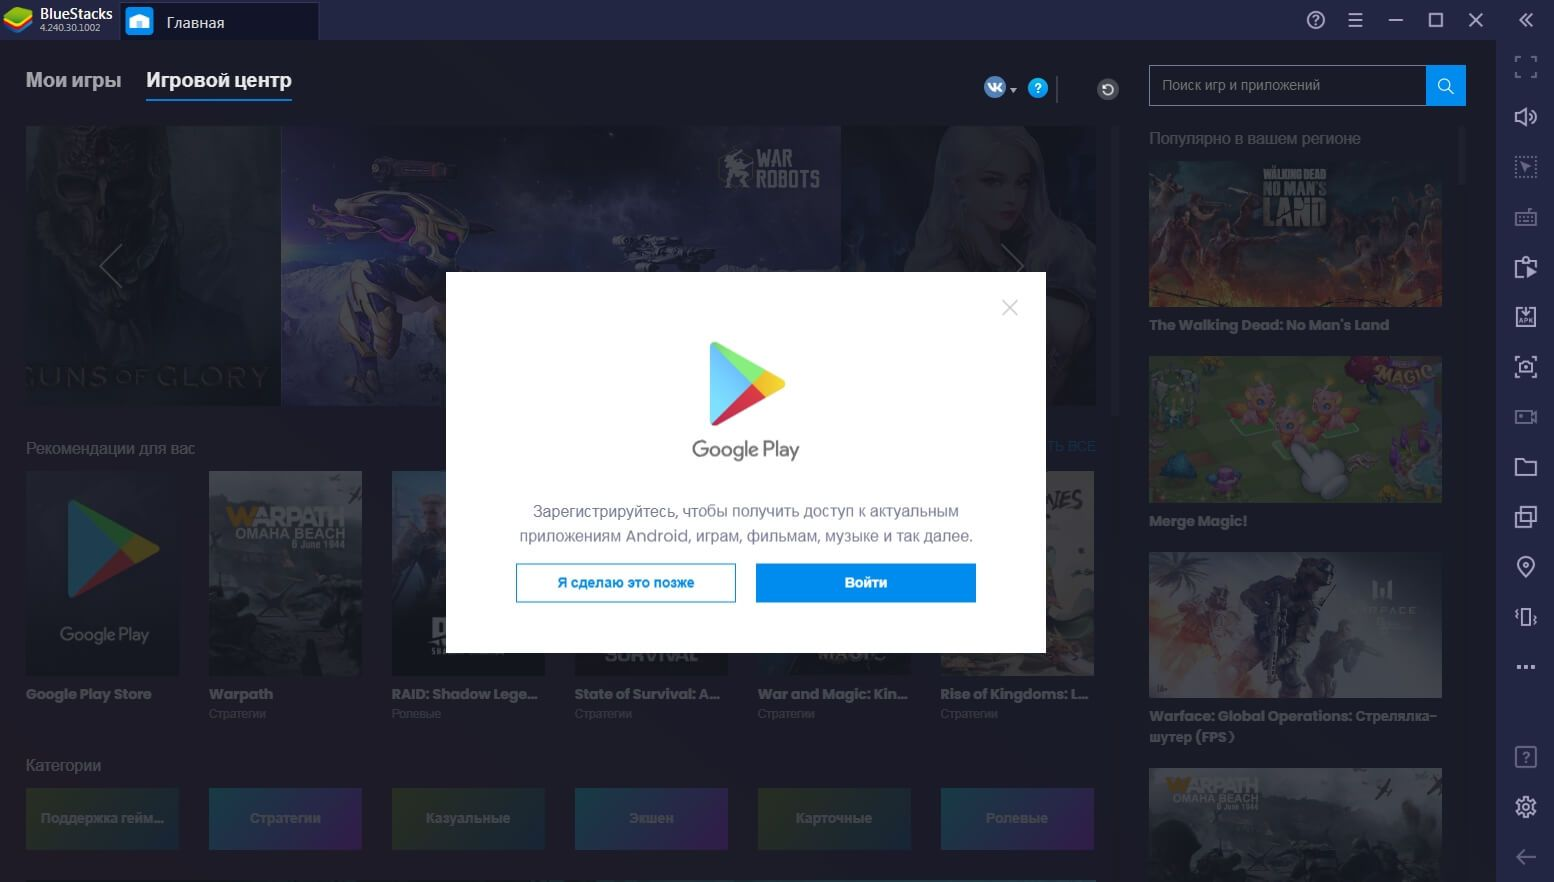 After installing the application, log into your Google Play account